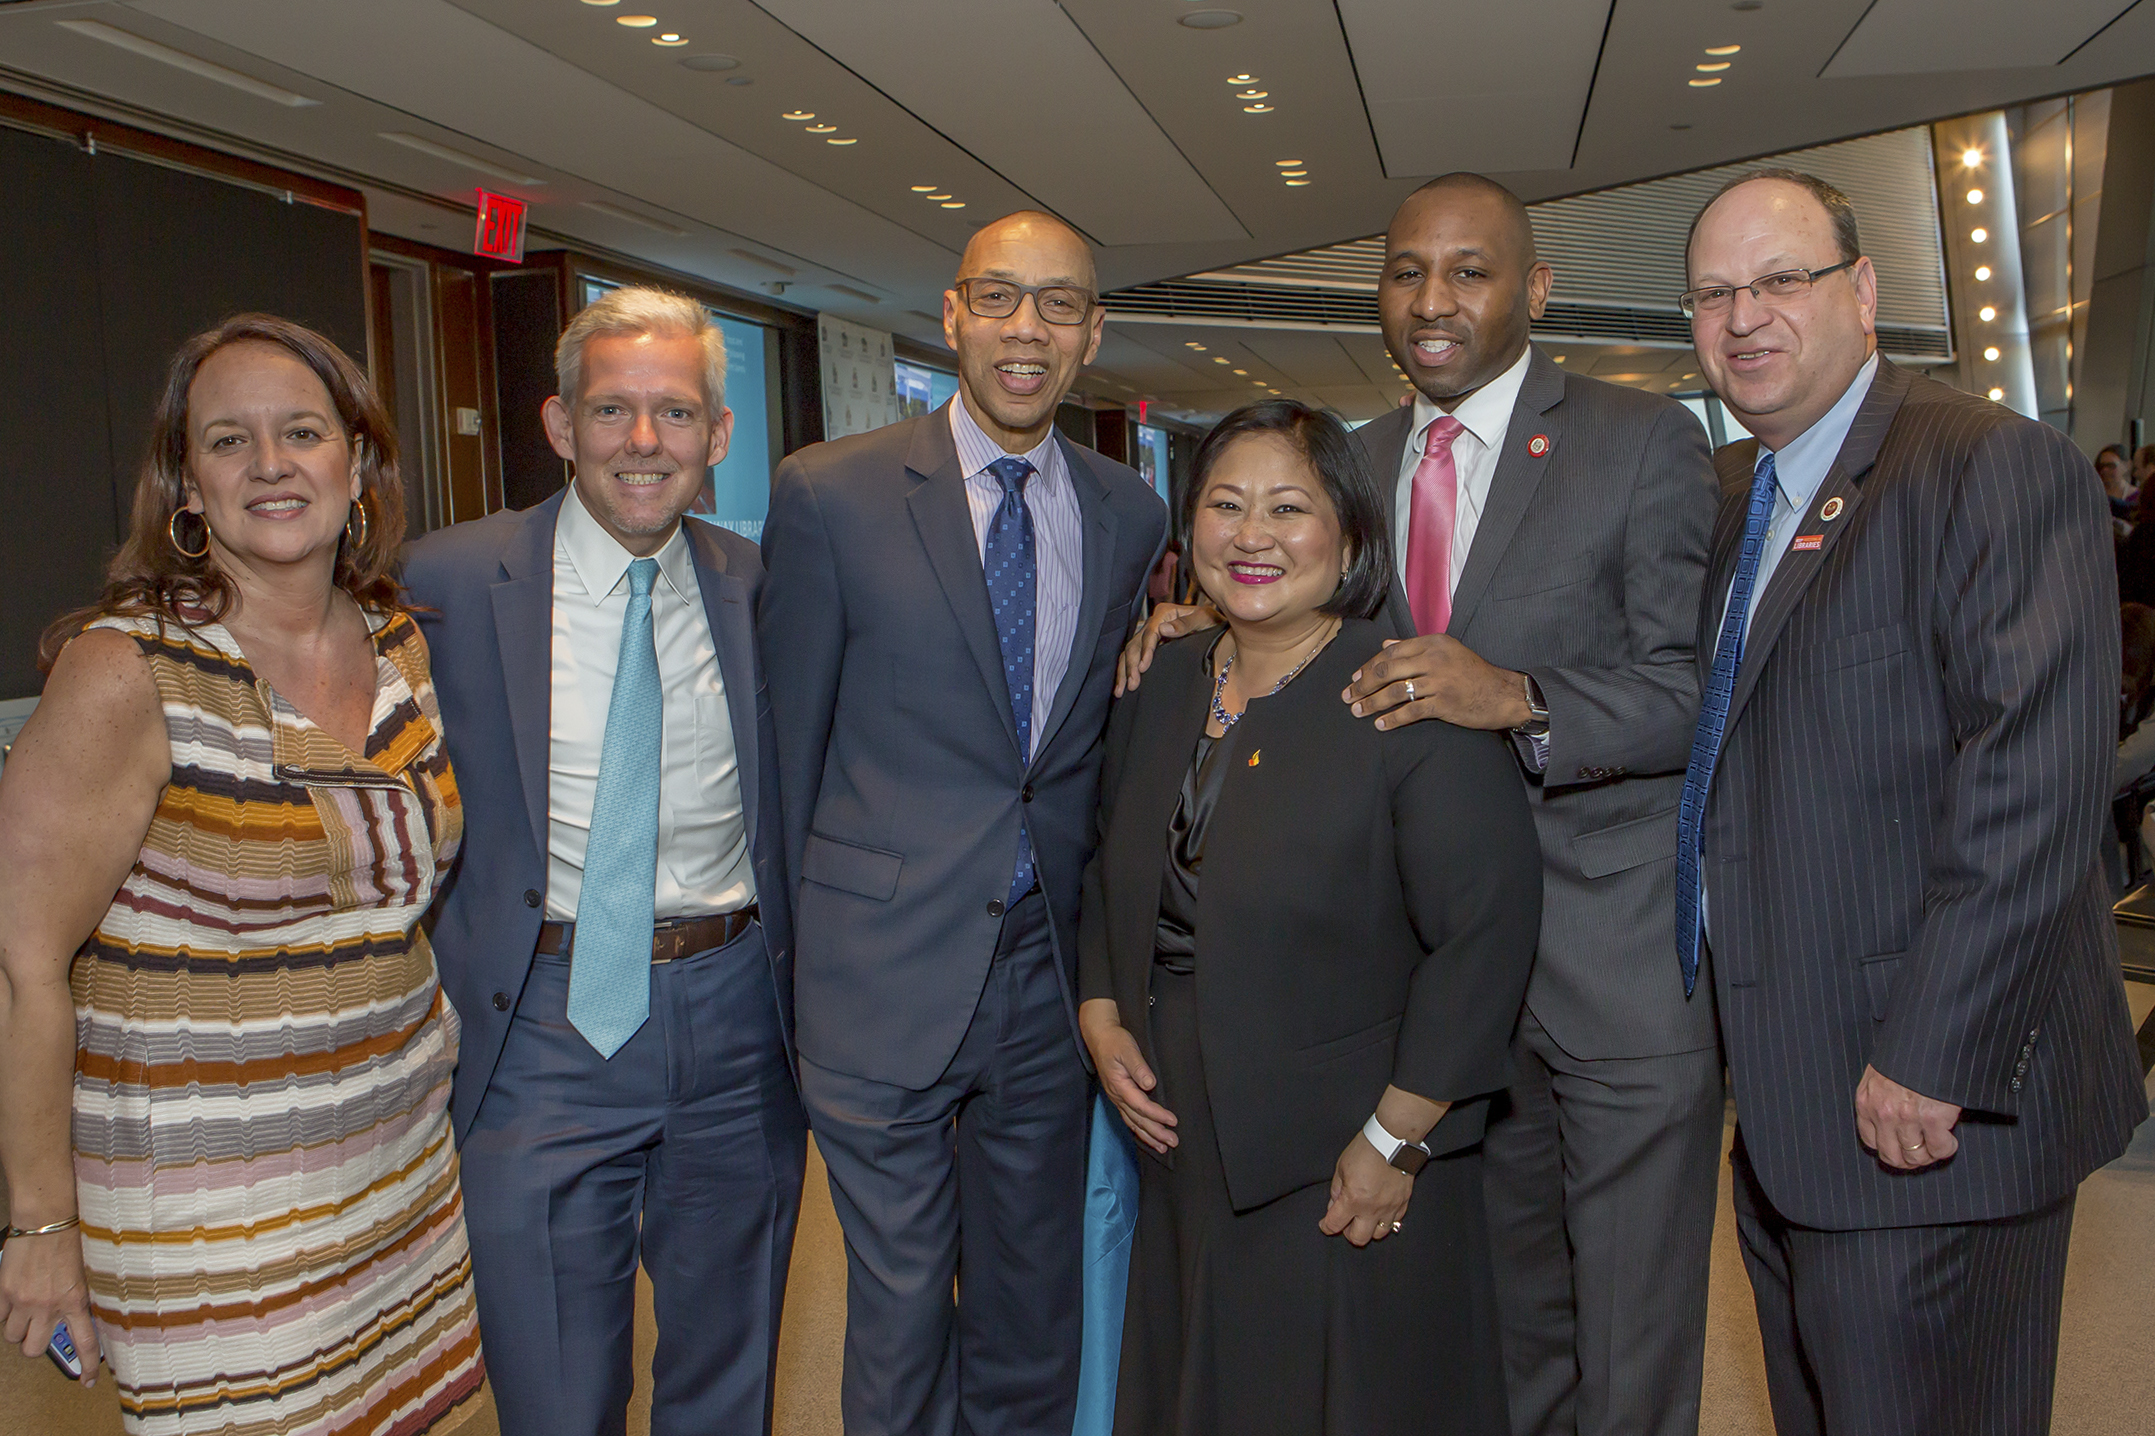 Haeda Mihaltses, Queens Library Trustee; Council Member Jimmy Van Bramer; Queens Library President Dennis Walcott; Eve Cho Guillergan, Queens Library Trustee; Council Member Donovan Richards; and Council Member Barry Grodenchik